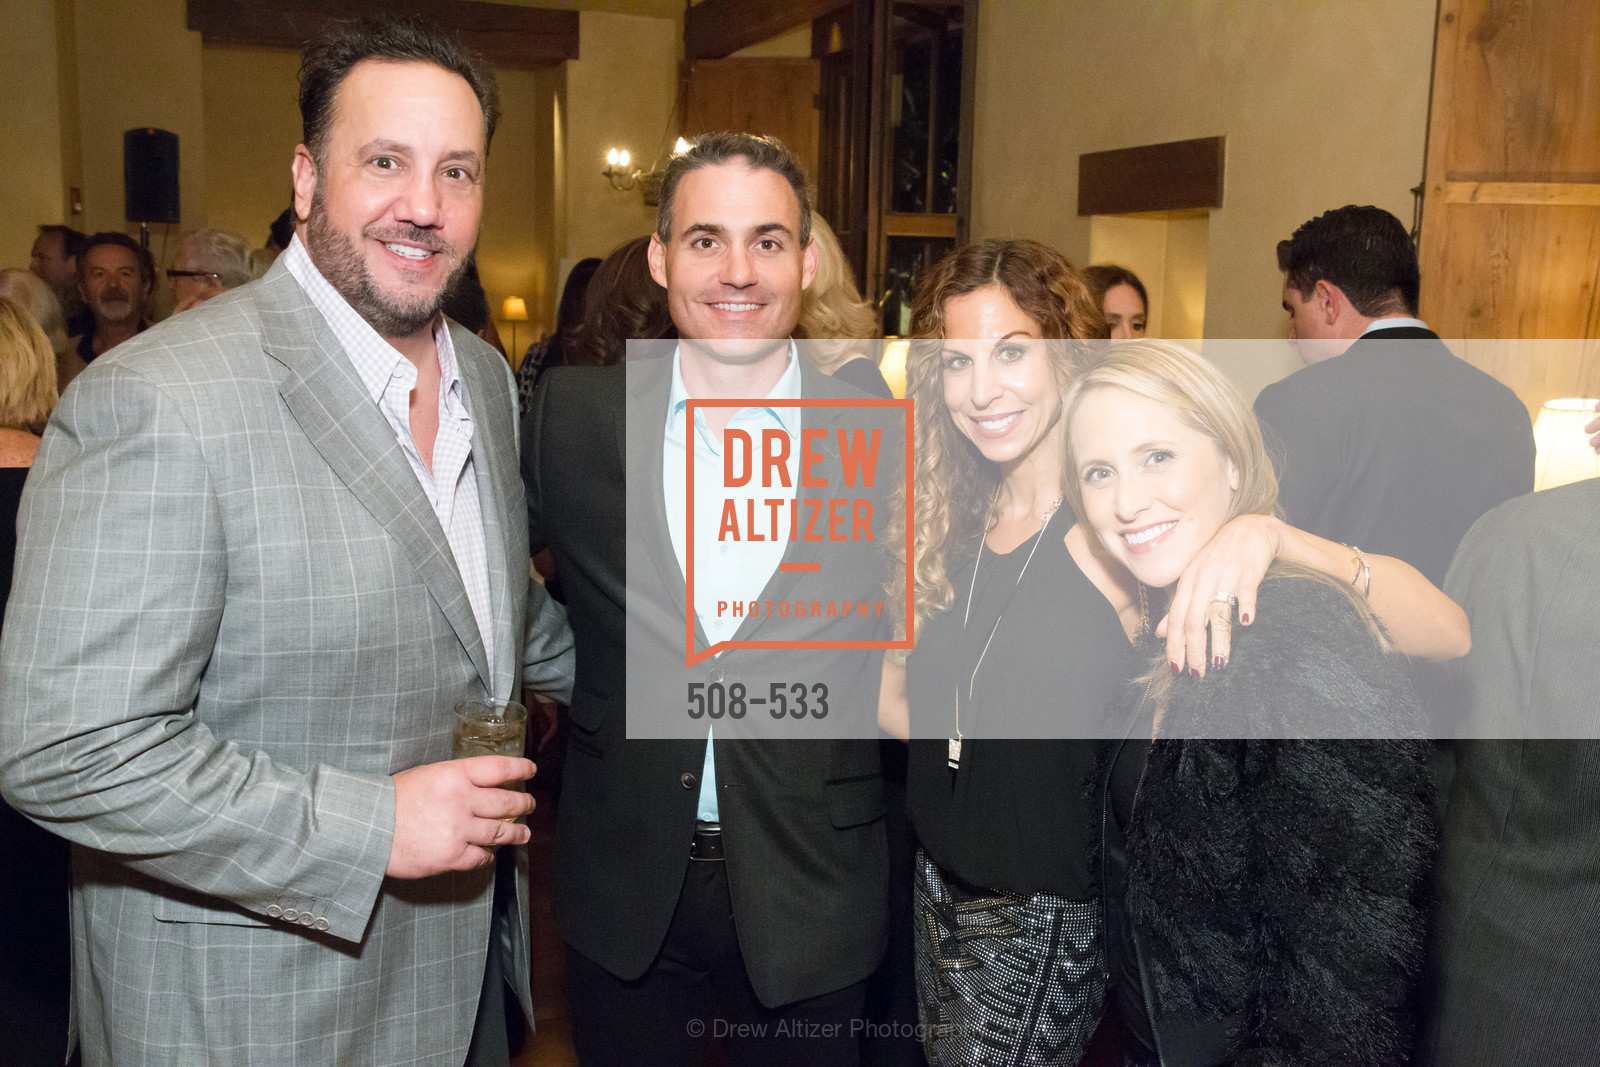 Chris Apostolopoulos, Patrick Mockler, Naki Bauer, Vanessa Mockler, Hellenic Charity Ball Cocktail Reception, Kokkari. 200 Jackson St, San Francisco, CA 94111, November 13th, 2015,Drew Altizer, Drew Altizer Photography, full-service agency, private events, San Francisco photographer, photographer california